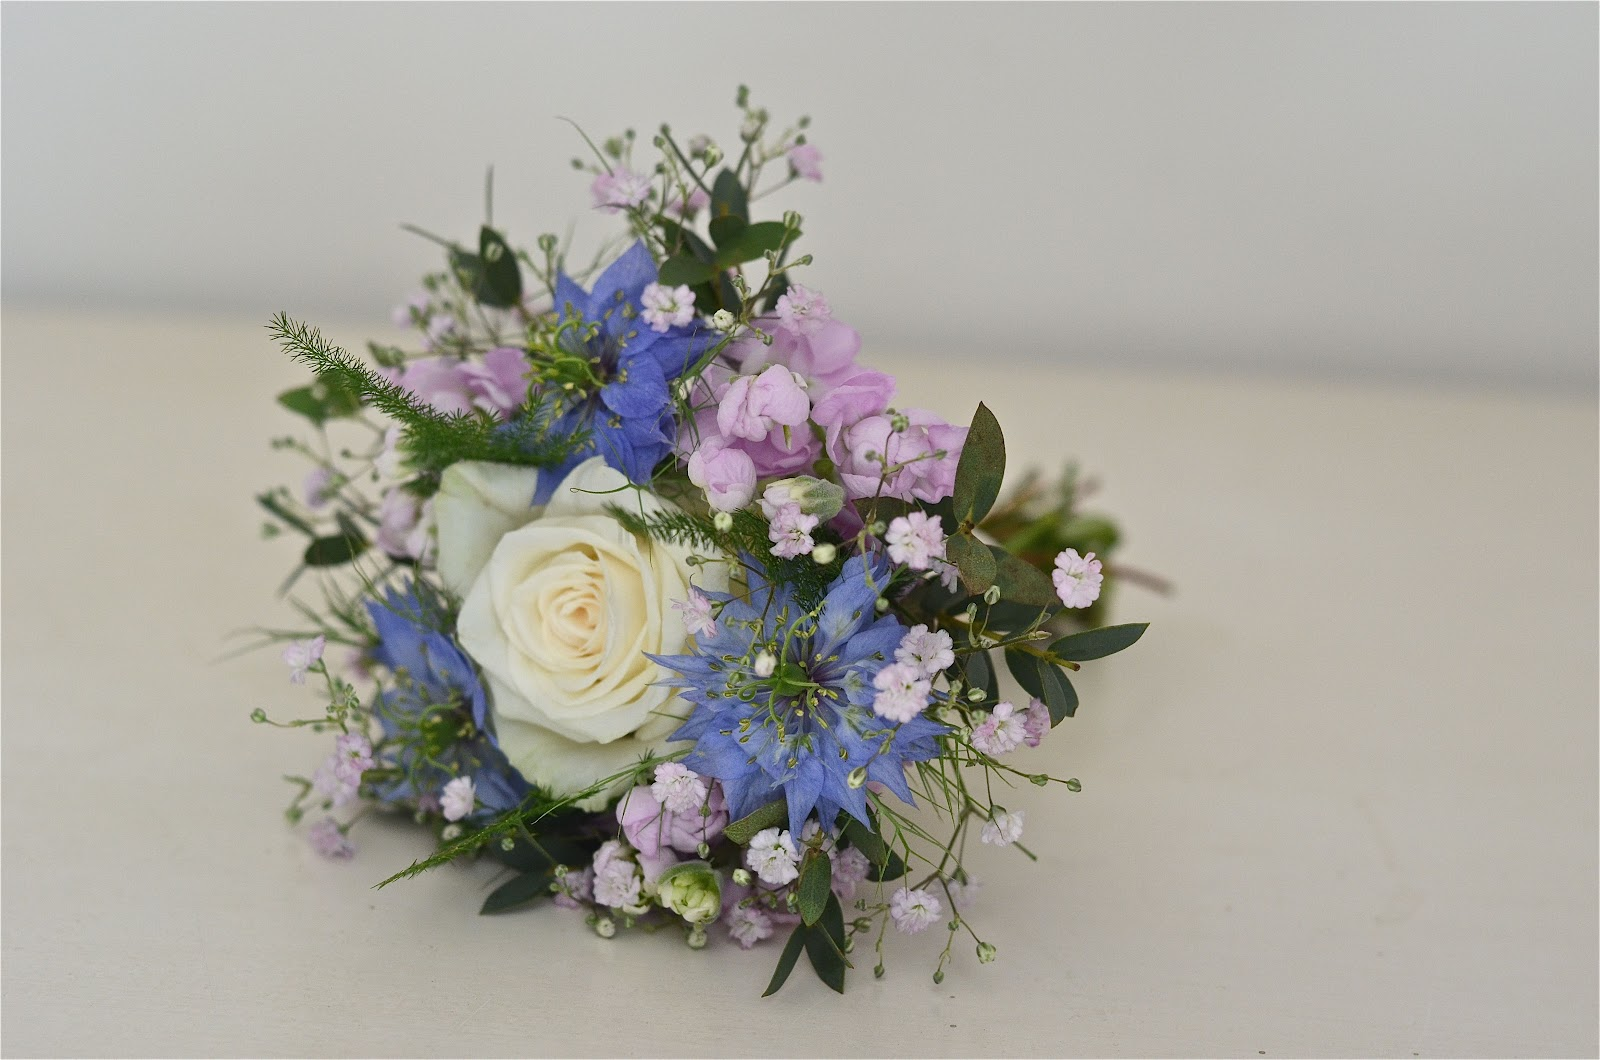 Wedding Flowers Blog: Laura's Vintage, English Country